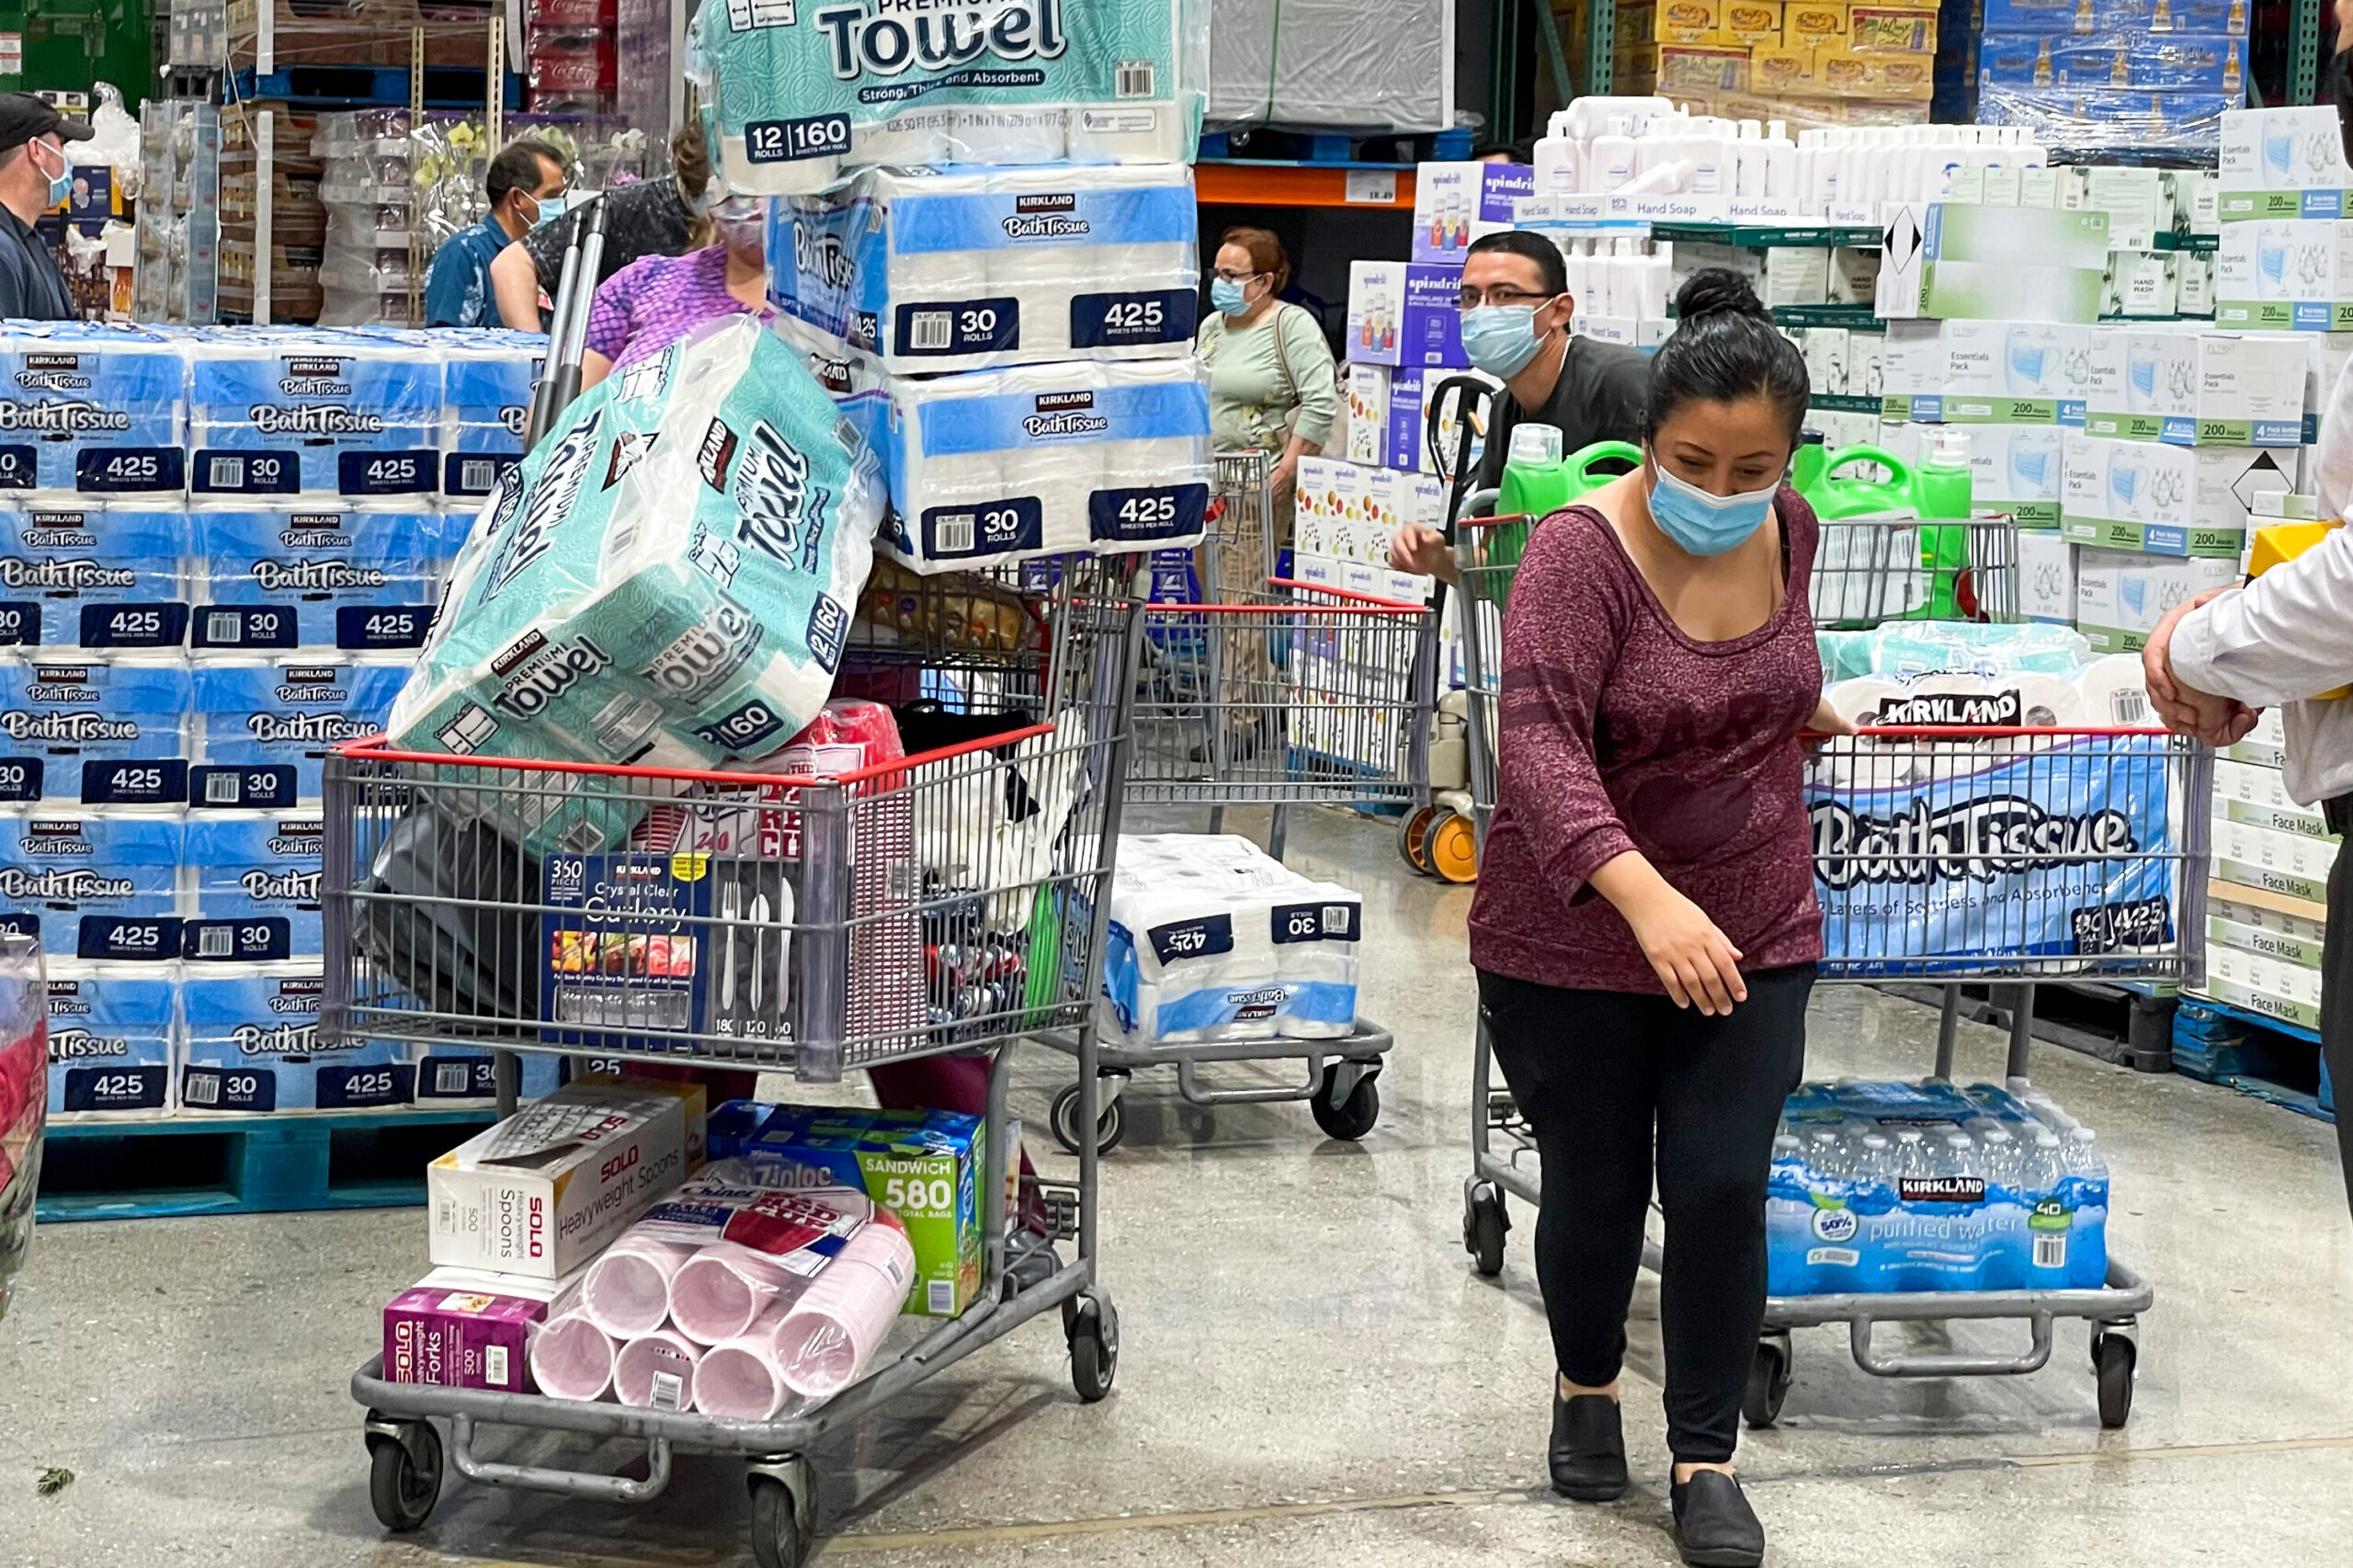 <i>Ringo Chiu/AP</i><br/>People buy toilet papers and paper towels at a Costco Wholesale store as panic buying following the coronavirus disease outbreak in Alhambra